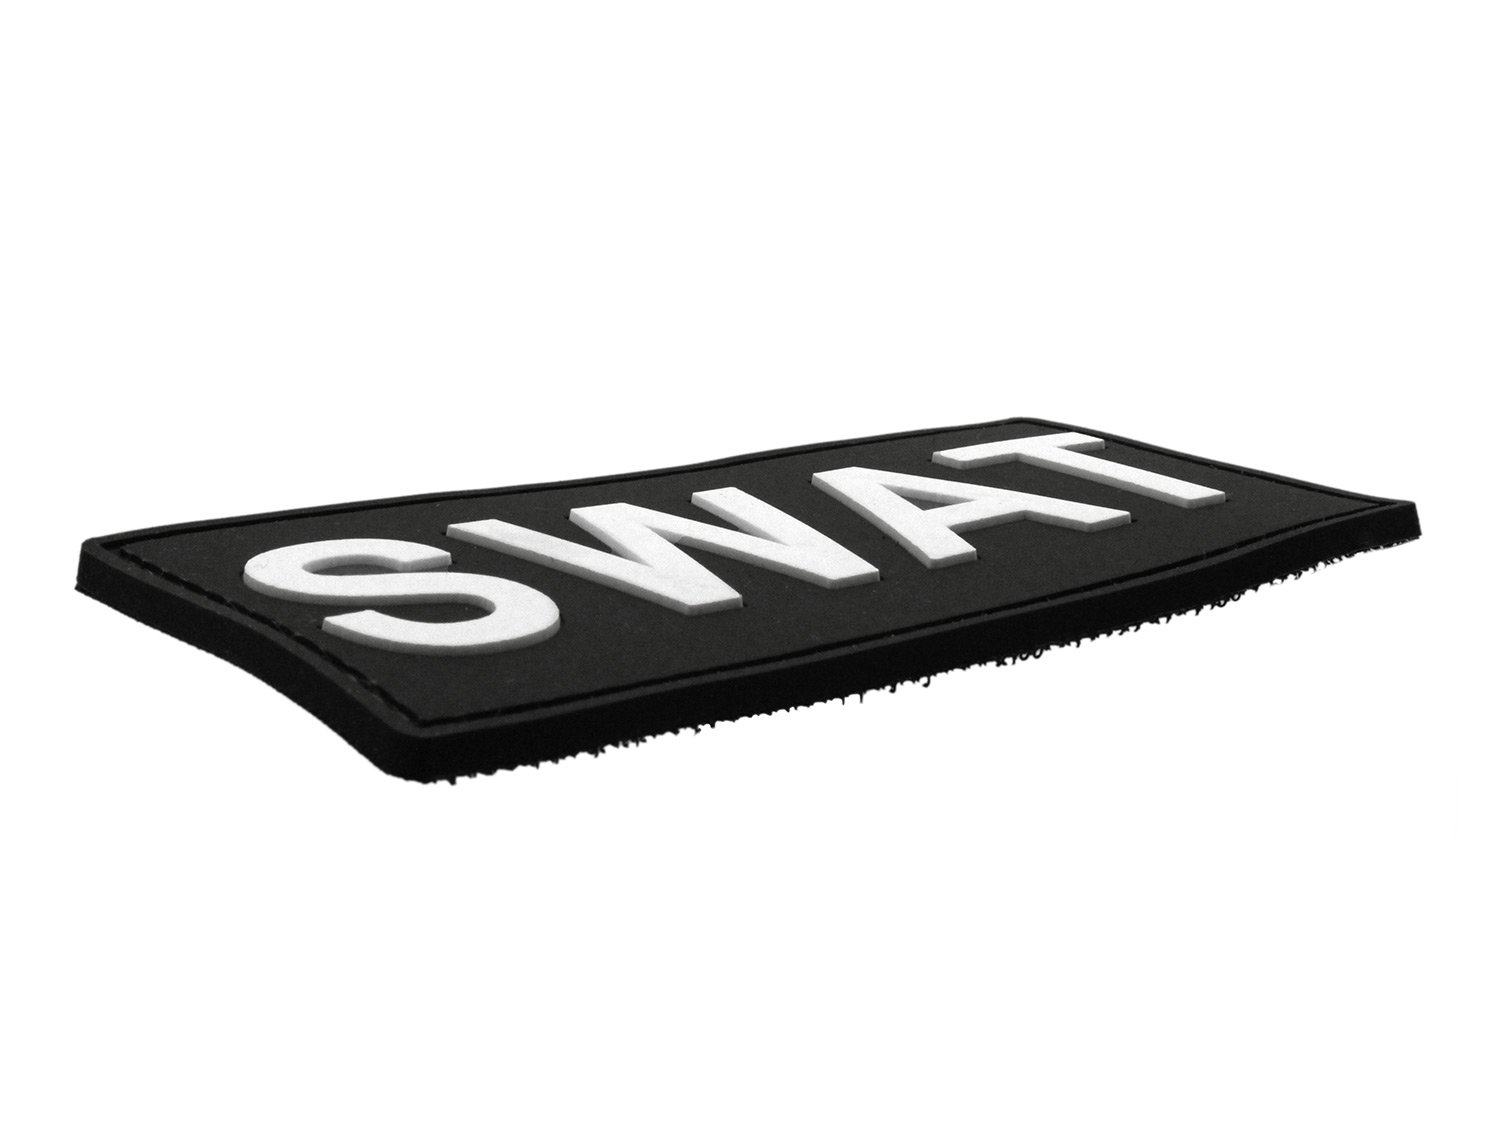 with velcro black 10x4,5cm SWAT - BE-X 3D Rubber Patch